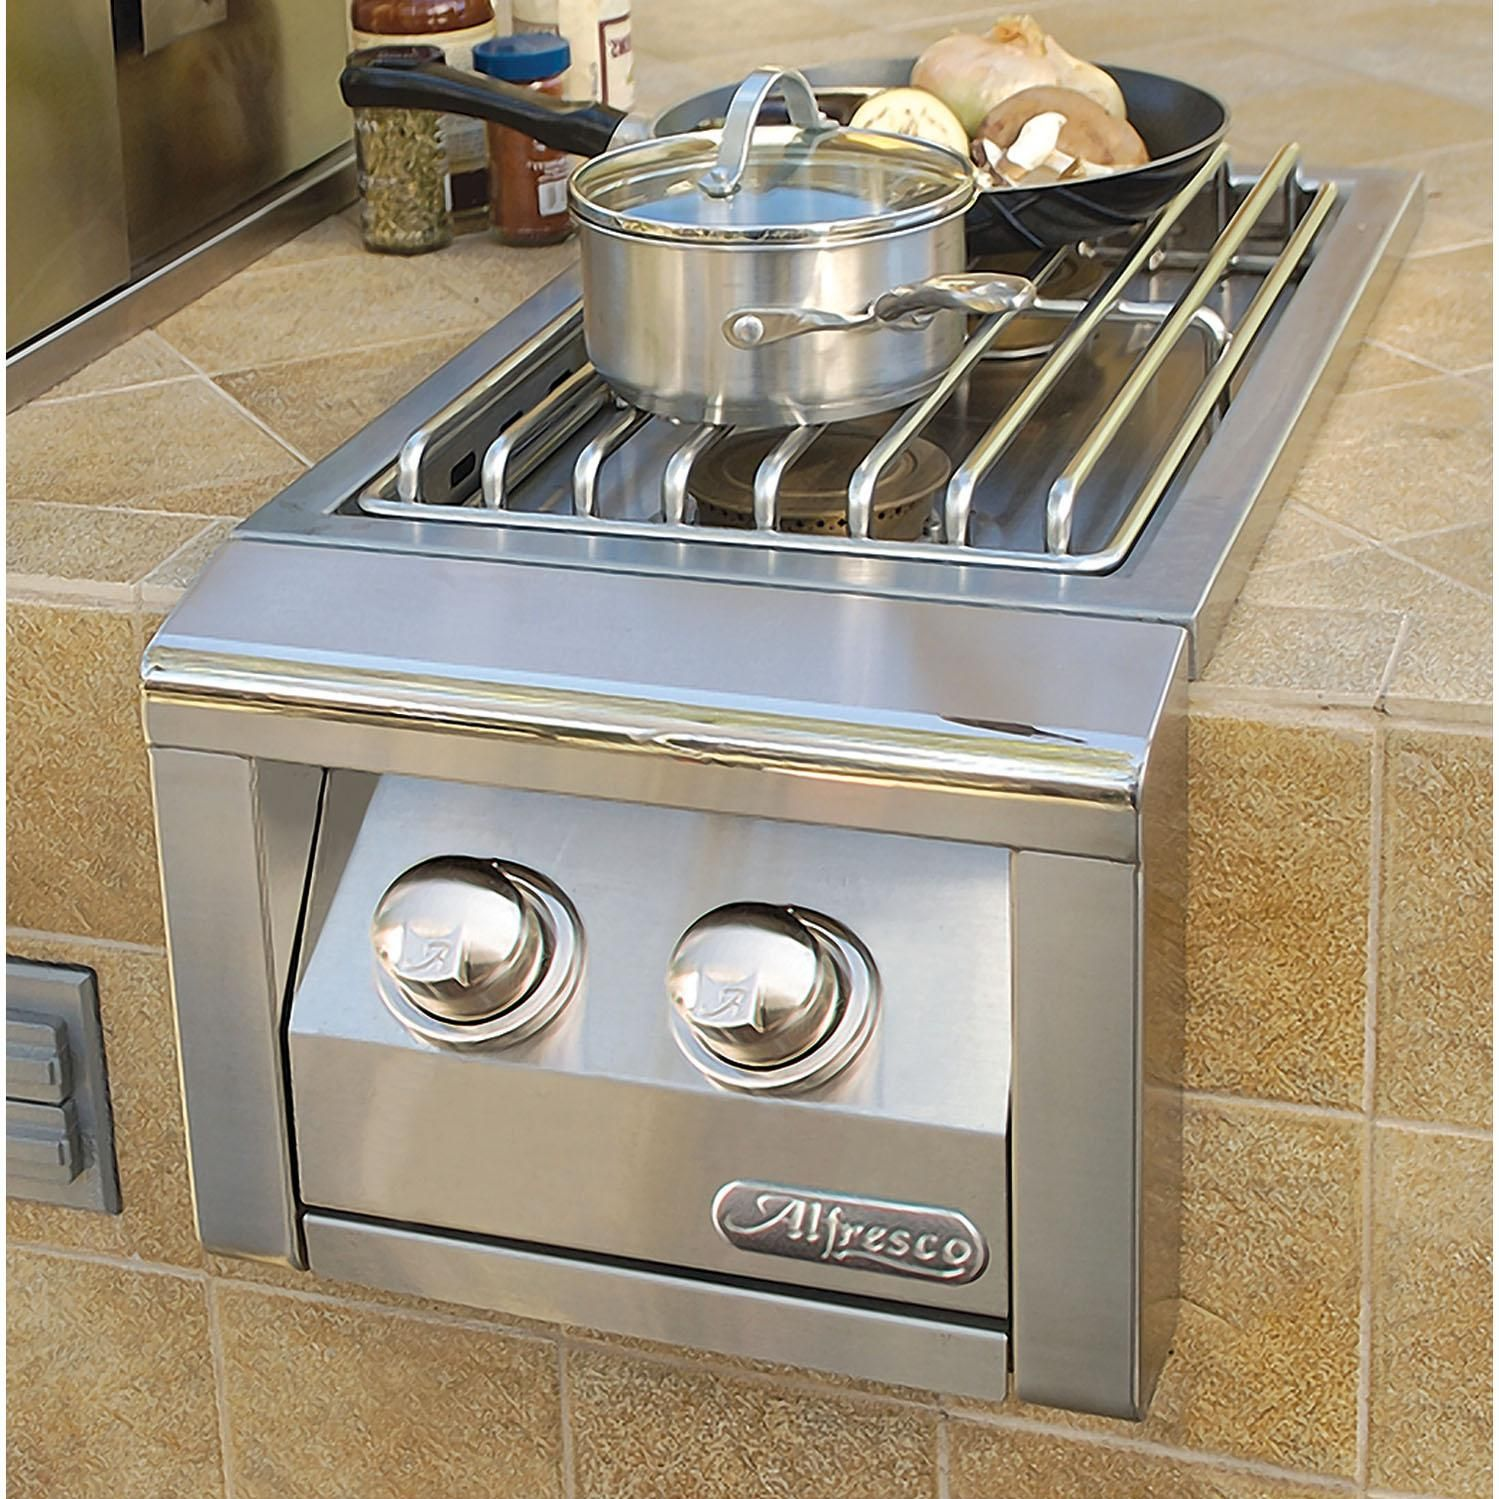 This Alfresco Natural Gas Dual Side Burner Has All Of The Power And Control Of A Pr Outdoor Kitchen Outdoor Kitchen Design Outdoor Kitchen Appliances